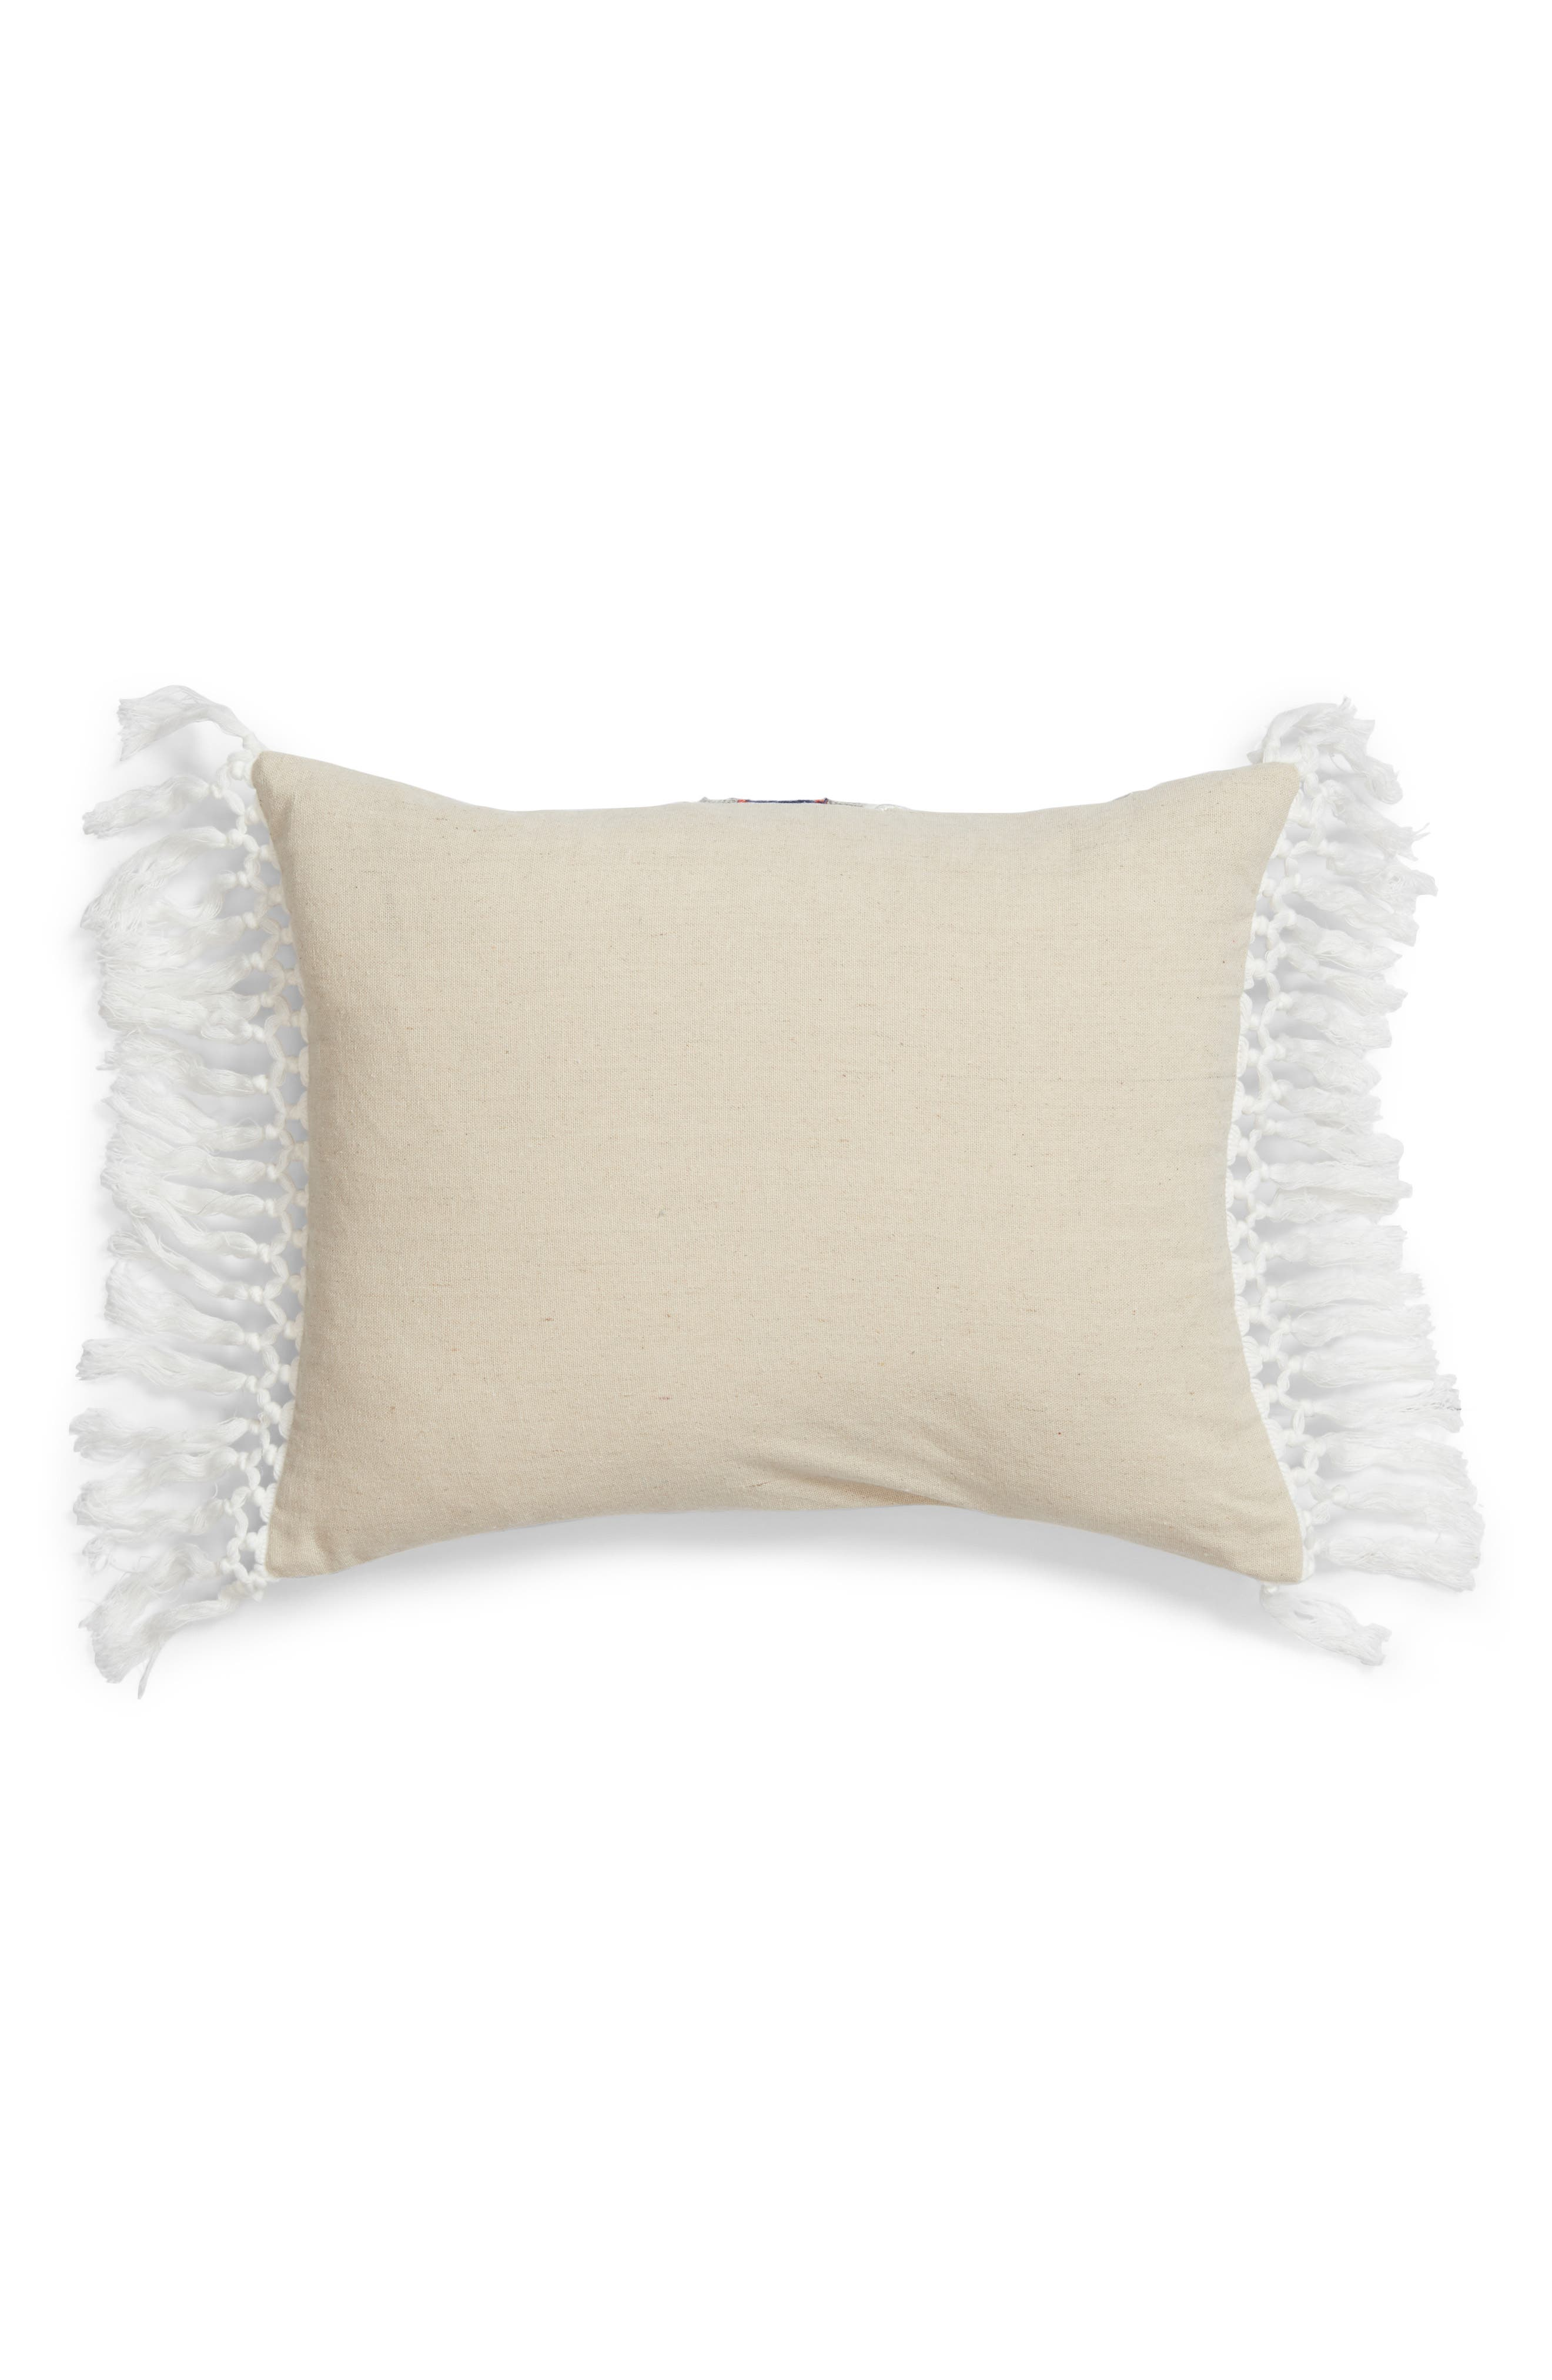 Reya Embroidered Accent Pillow,                             Alternate thumbnail 3, color,                             Natural